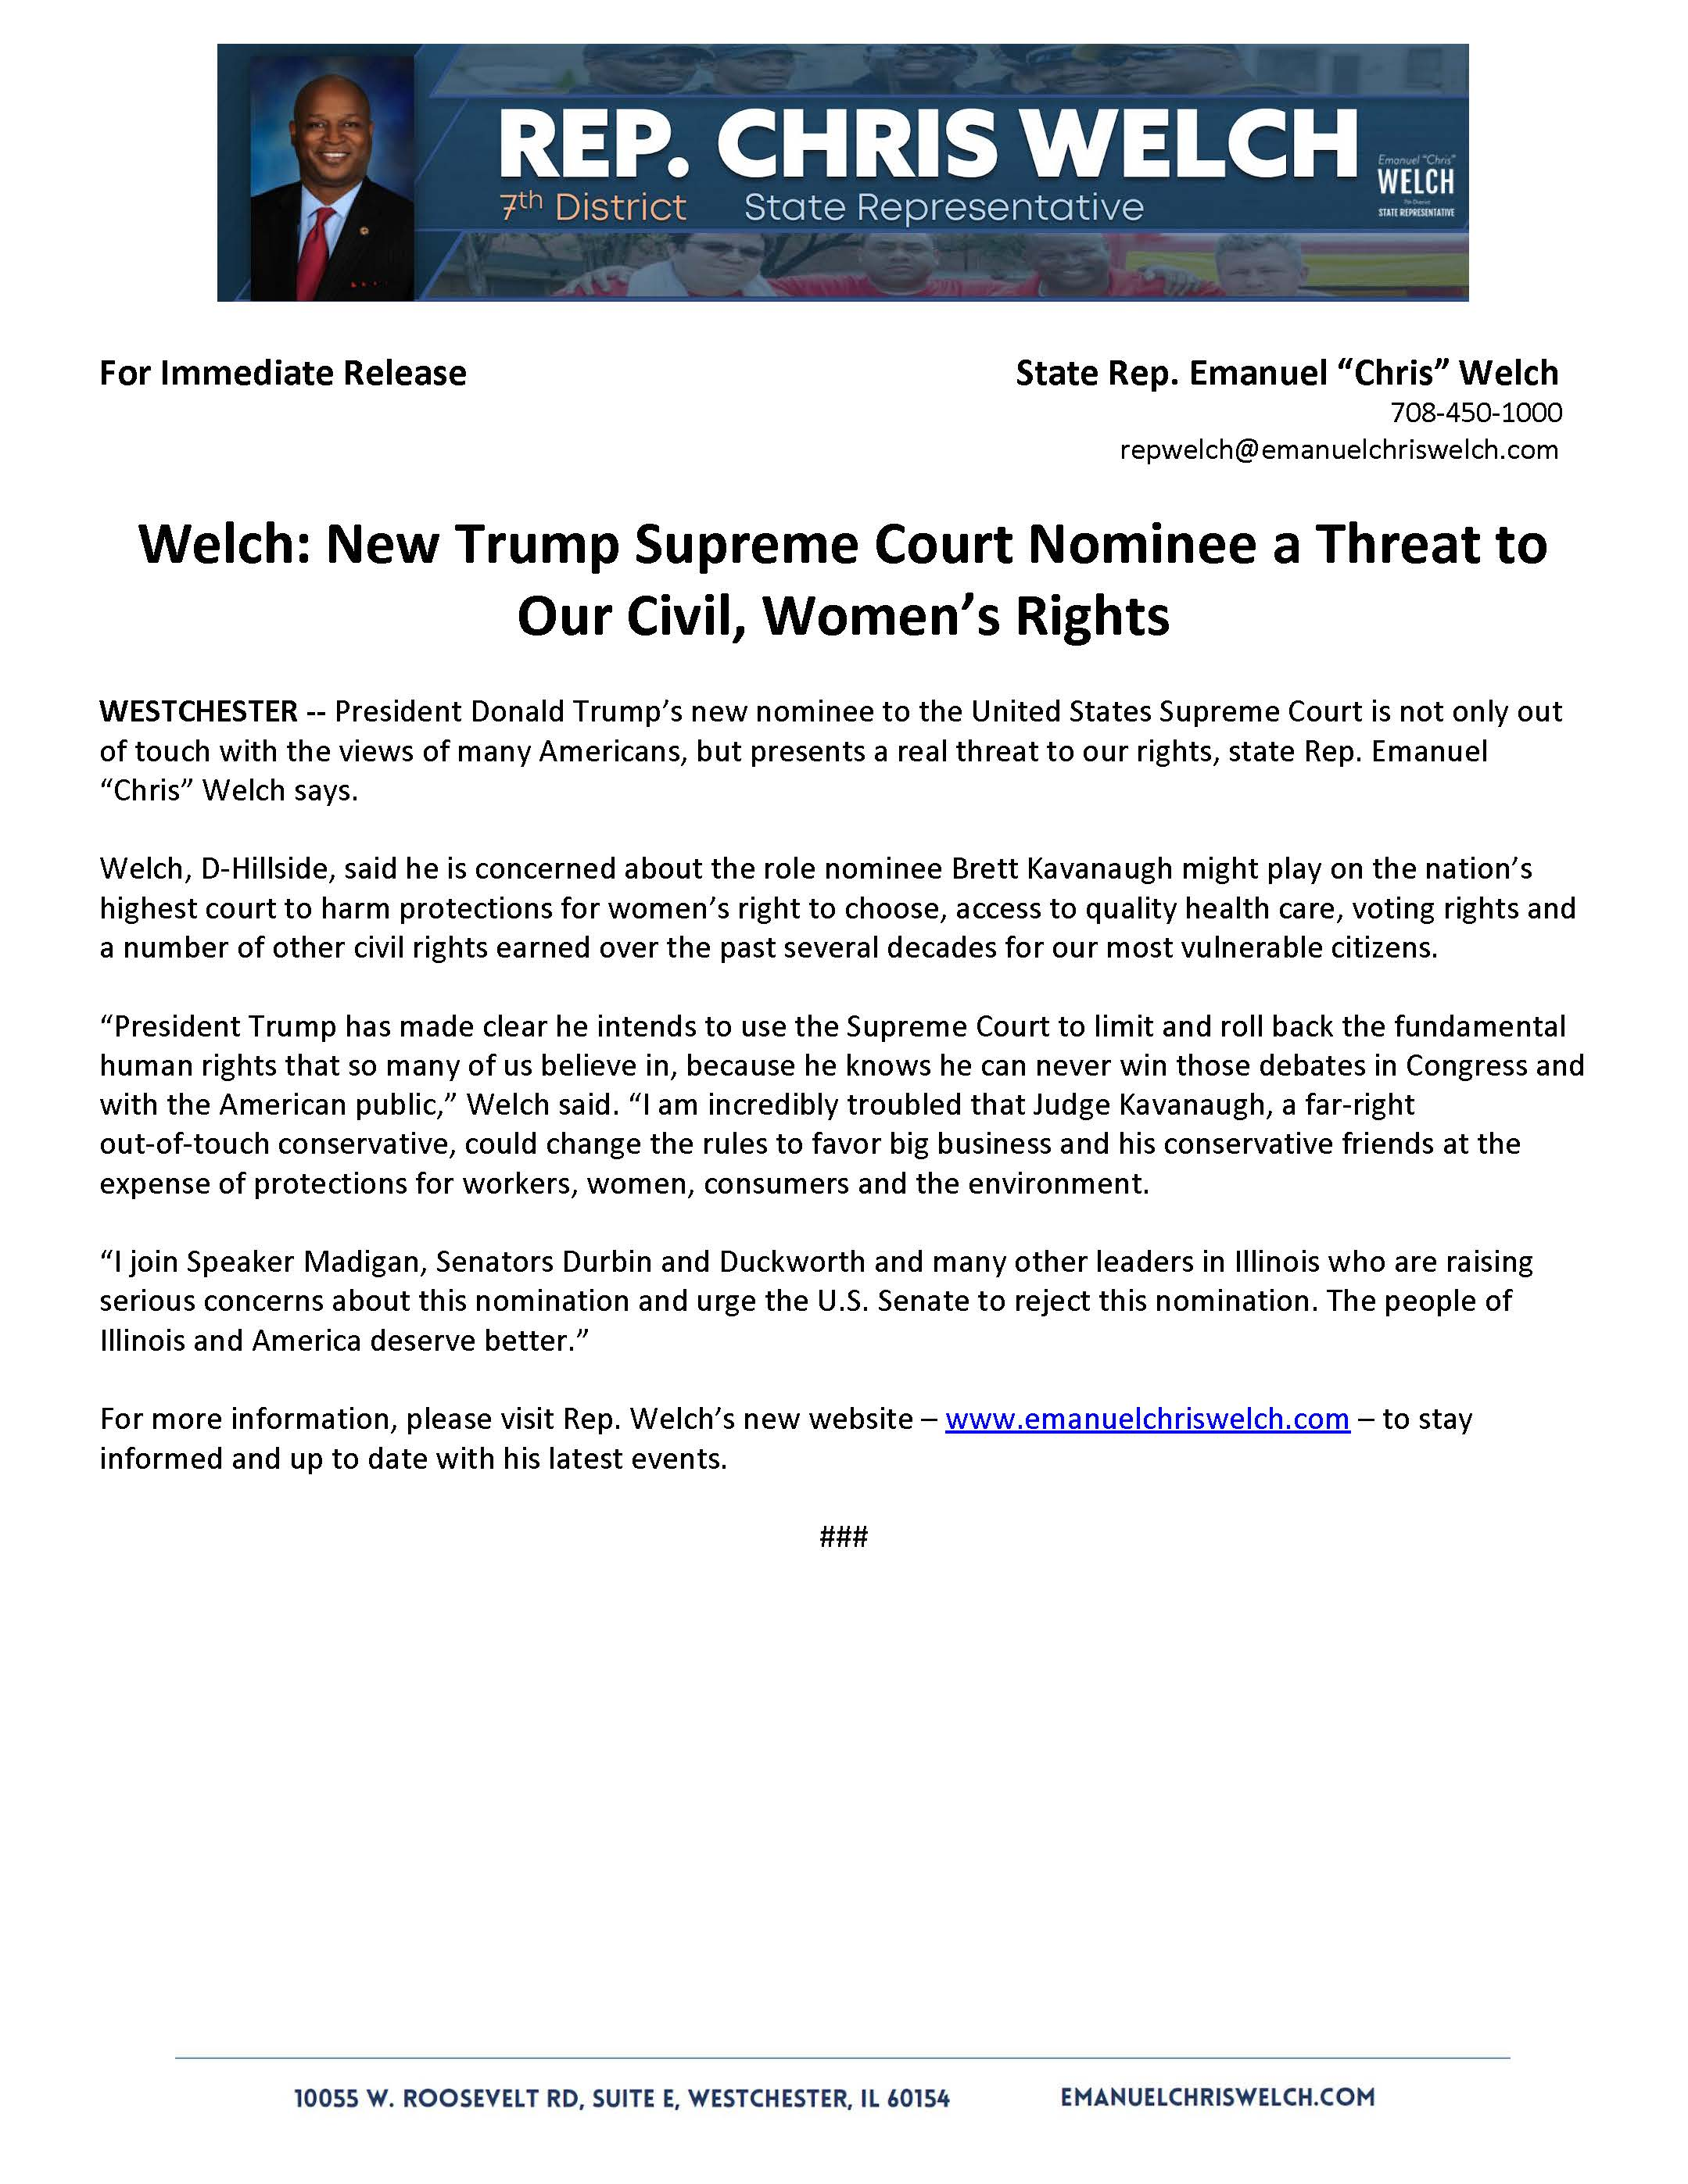 Welch: New Trump Supreme Court Nominee a Threat to Our Civil, Women's Rights  (July 13, 2018)